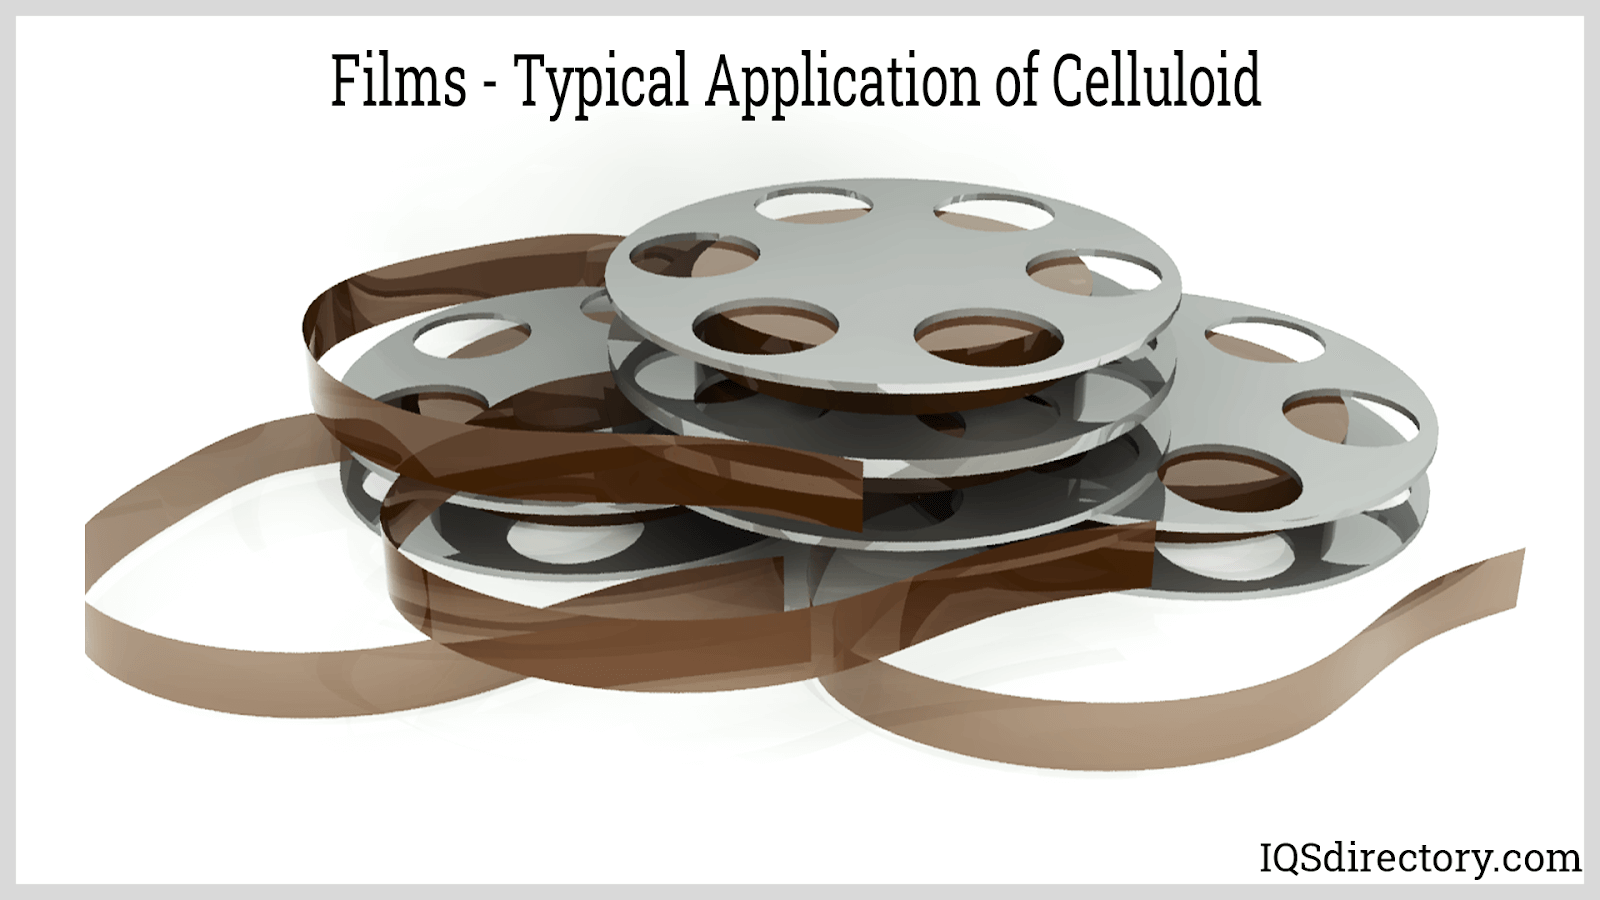 Films - Typical Application of Celluloid